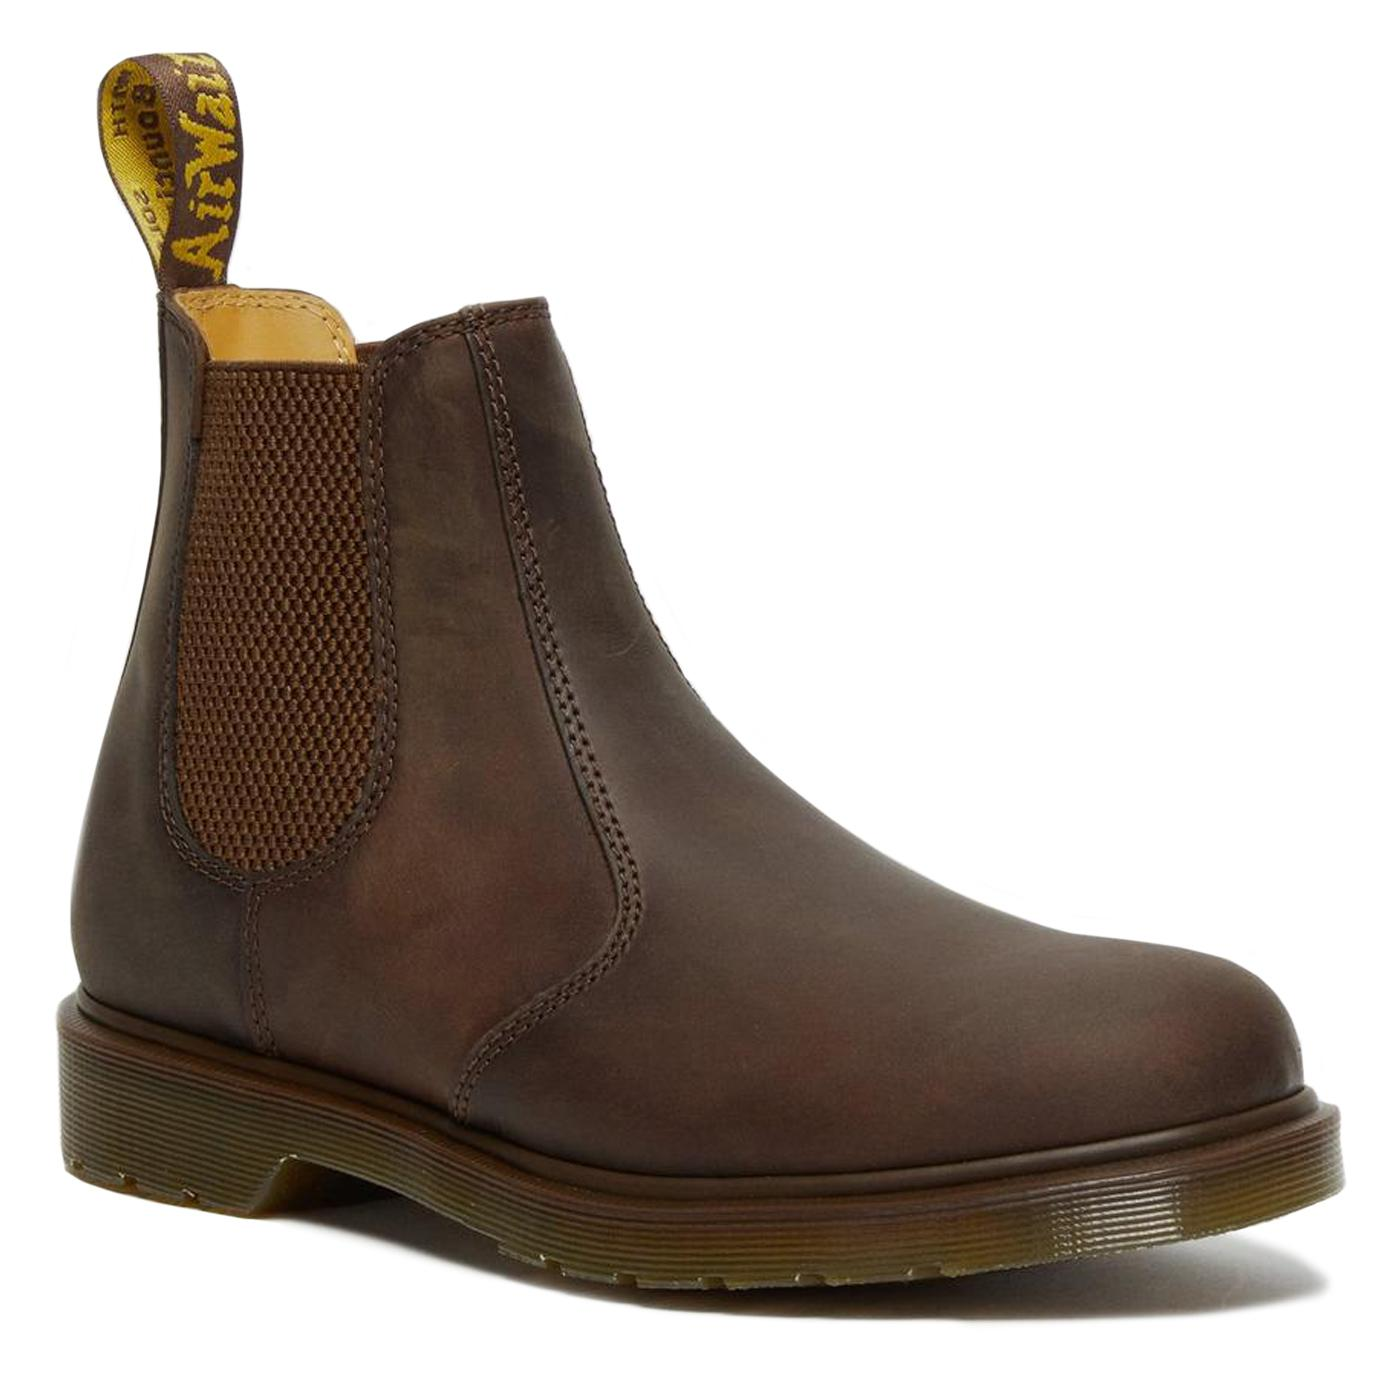 2976 Gaucho DR MARTENS Leather Chelsea Boots DB